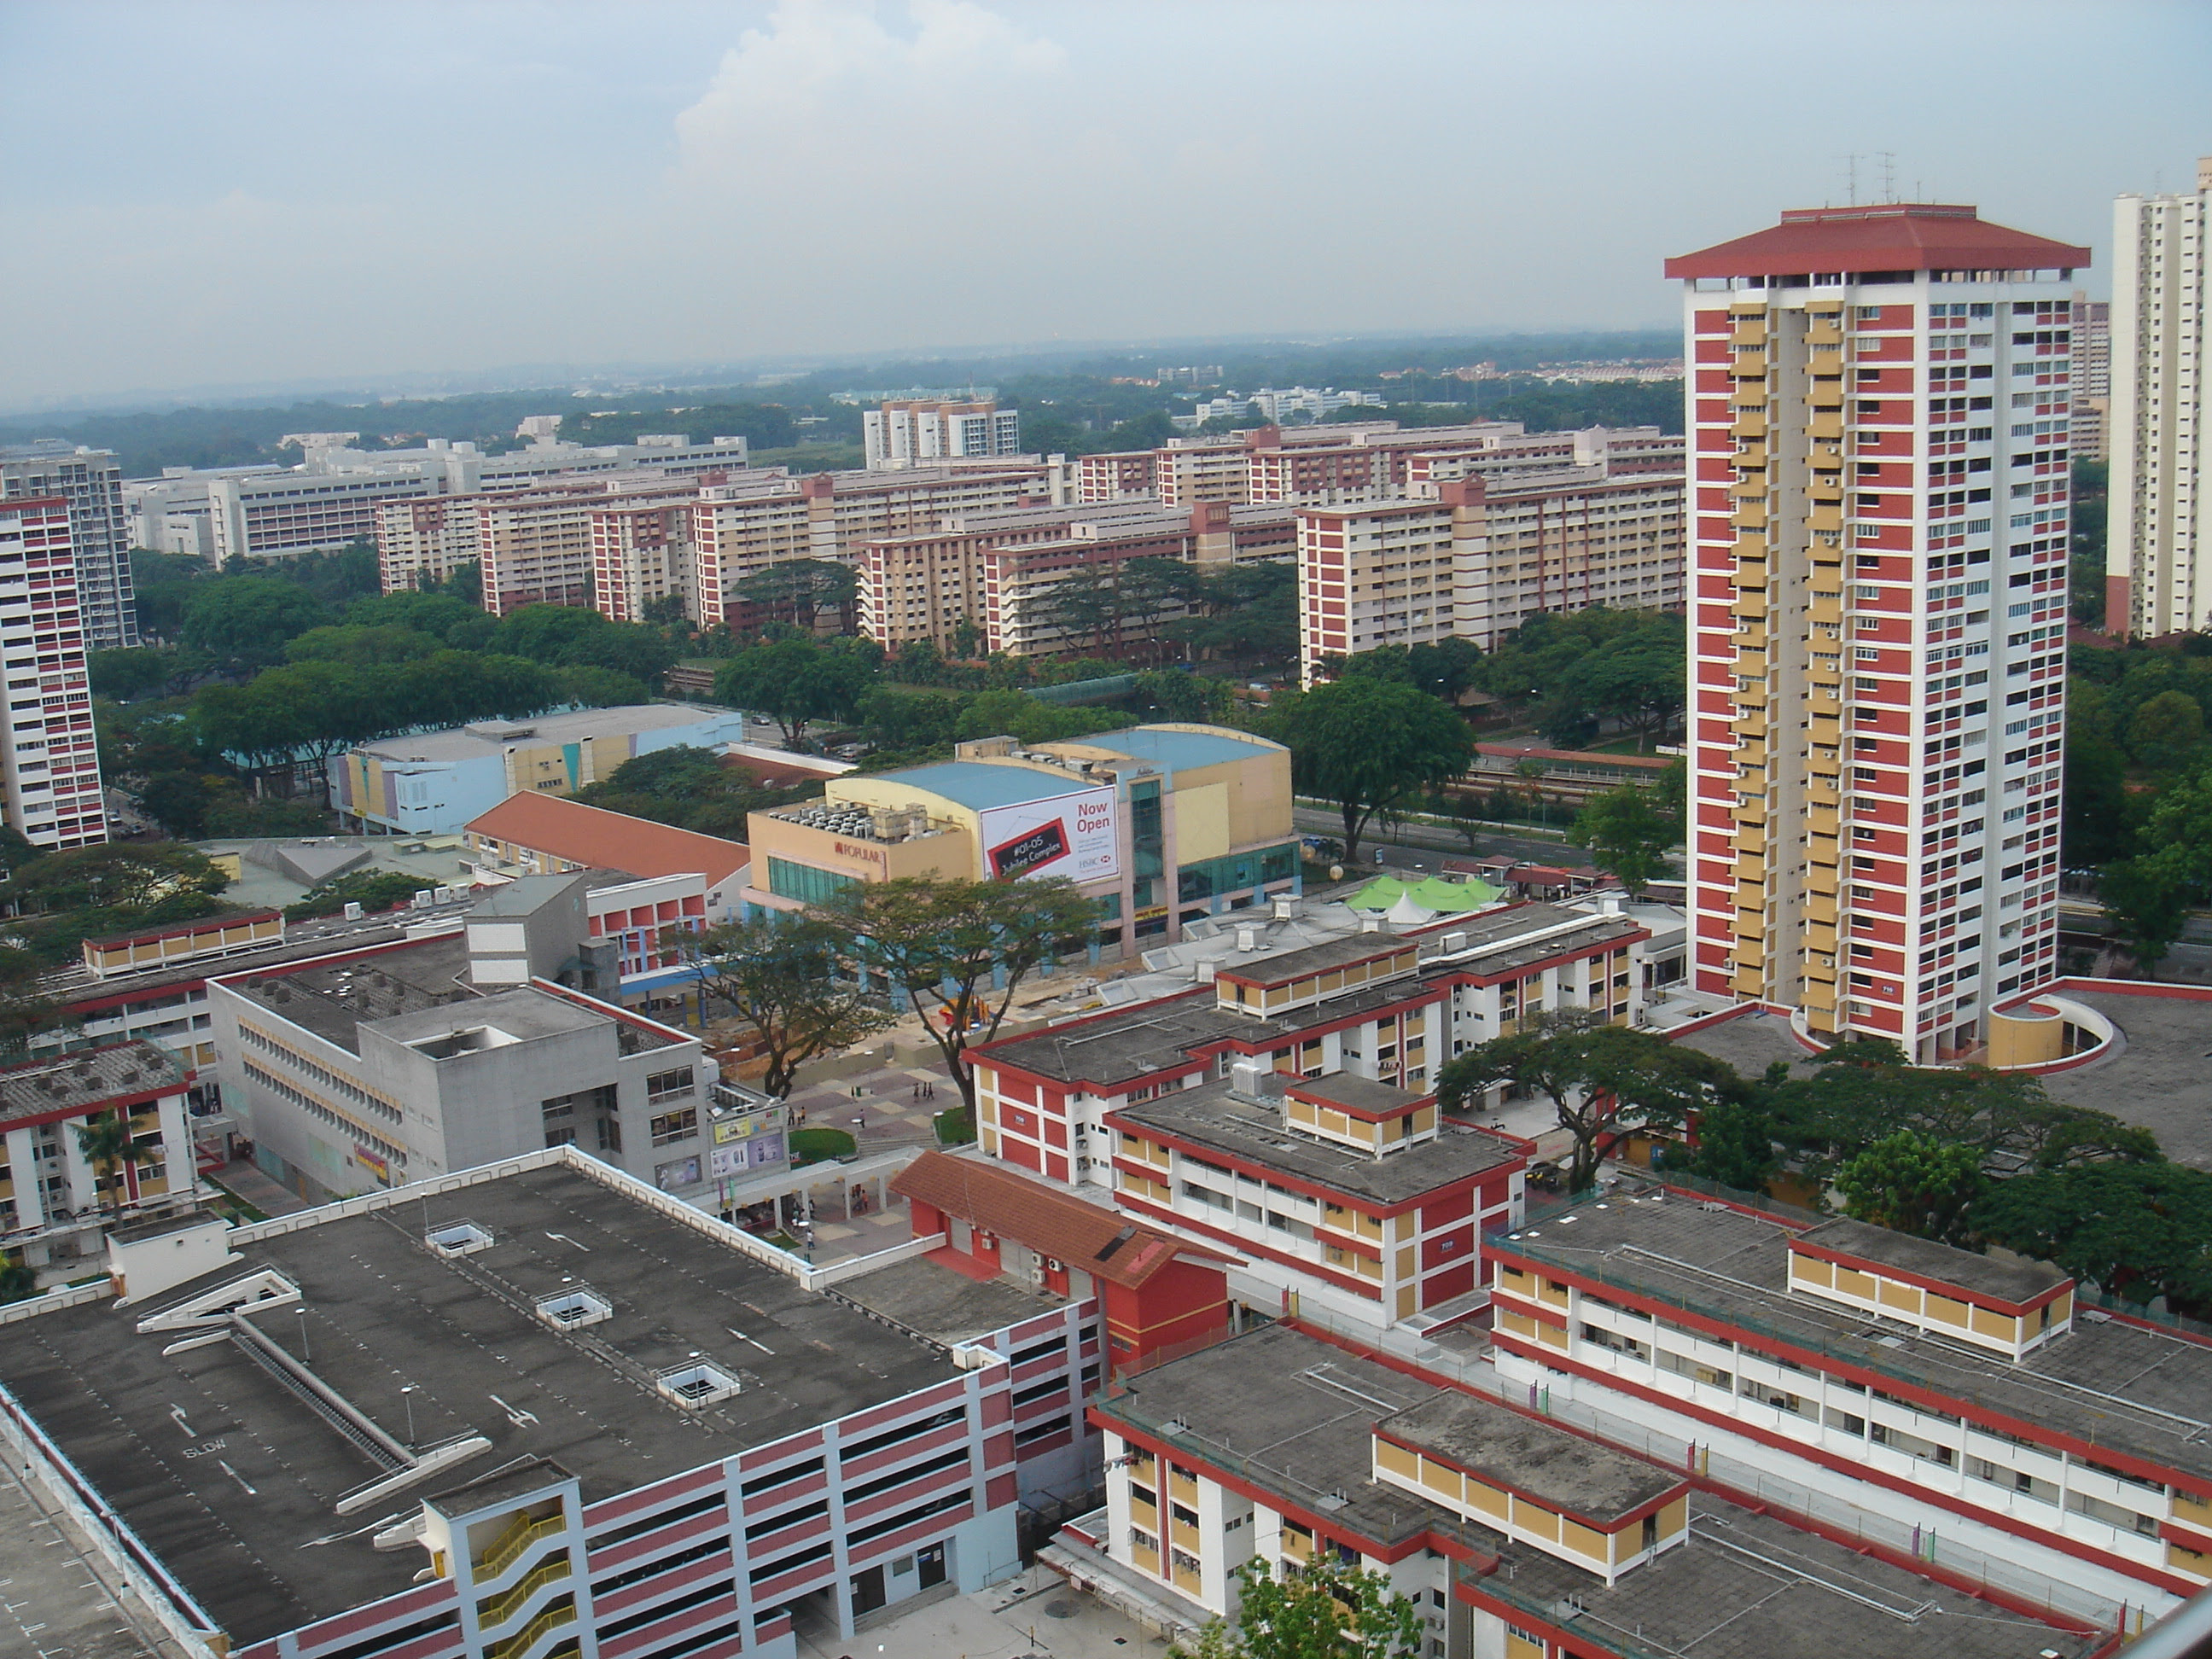 Ang Mo Kio Town Singapore Map,Map of Ang Mo Kio Town Singapore,Tourist Attractions in Singapore,Things to do in Singapore,Ang Mo Kio Town Singapore accommodation destinations hotels map reviews photos pictures